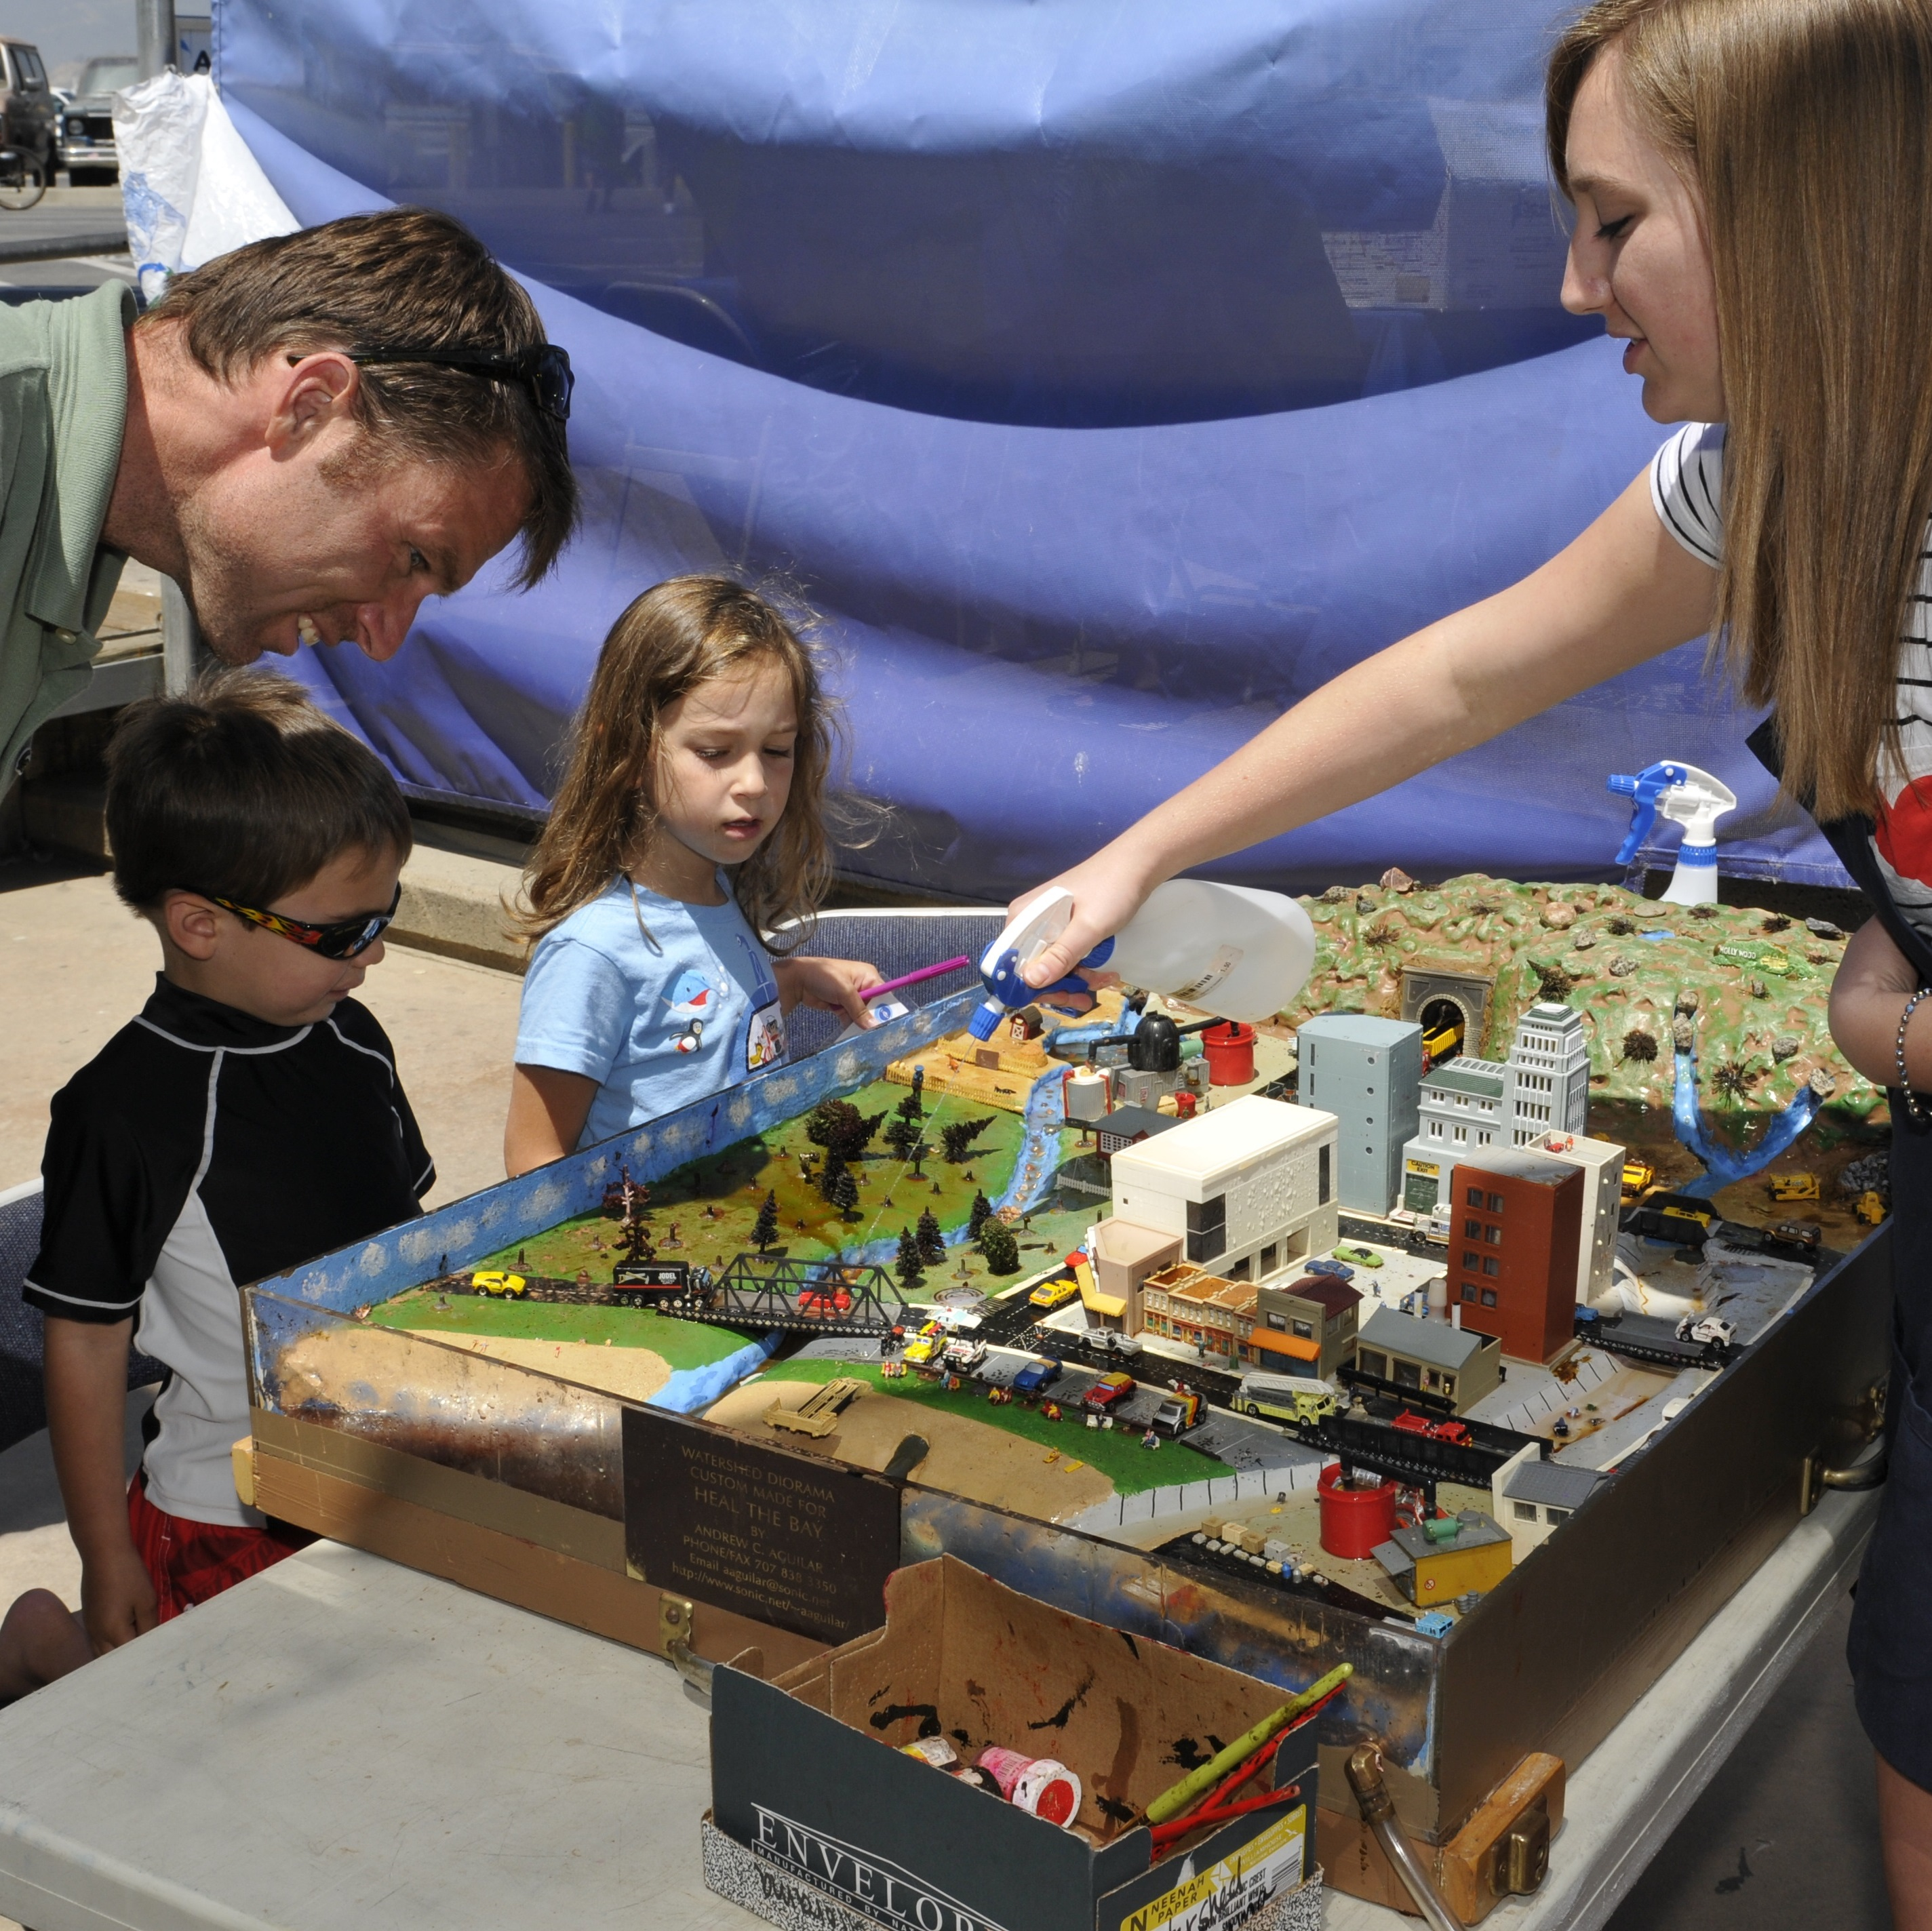 Volunteer with Diorama Demo at Heal the Bay's Santa Monica Pier Aquarium